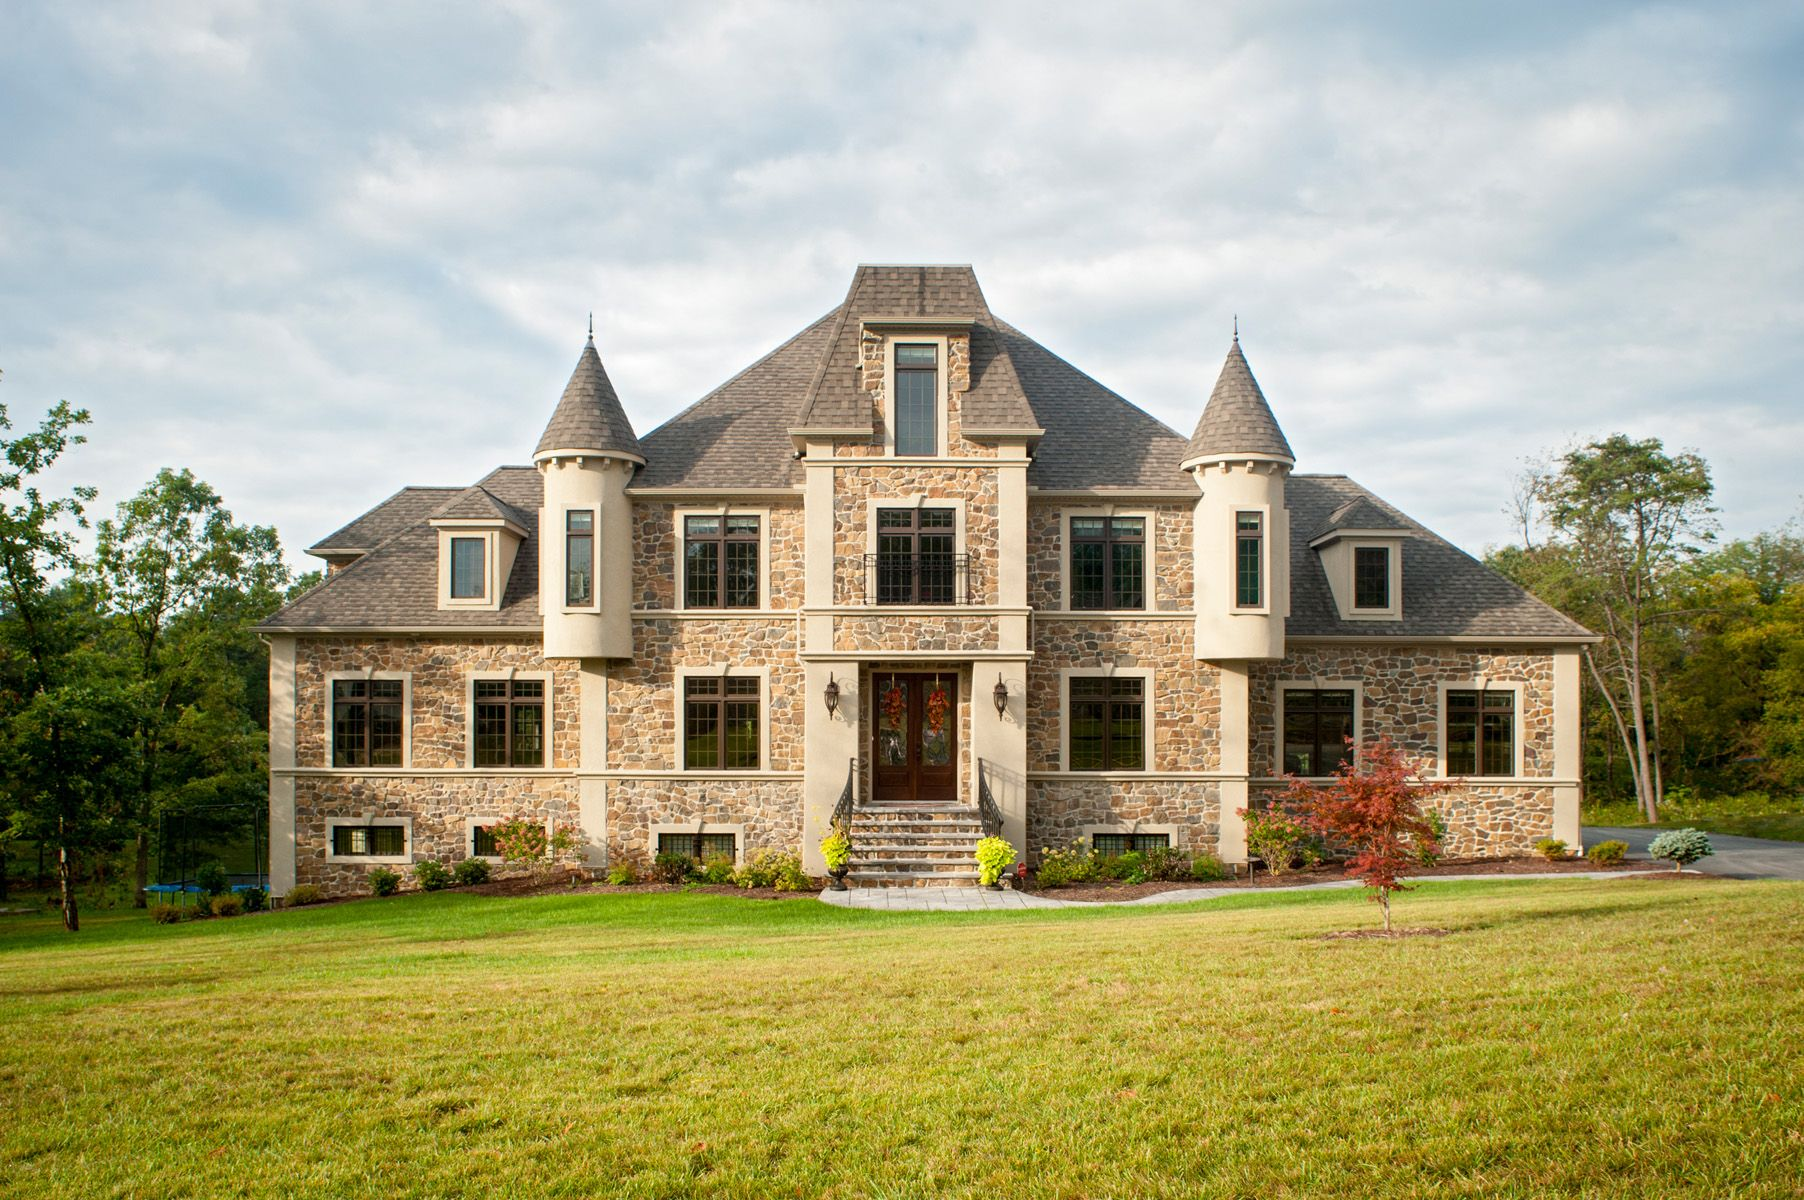 Looking To Build Your Dream House In Central Pennsylvania? Let FoxBuilt  Help You Realize Your